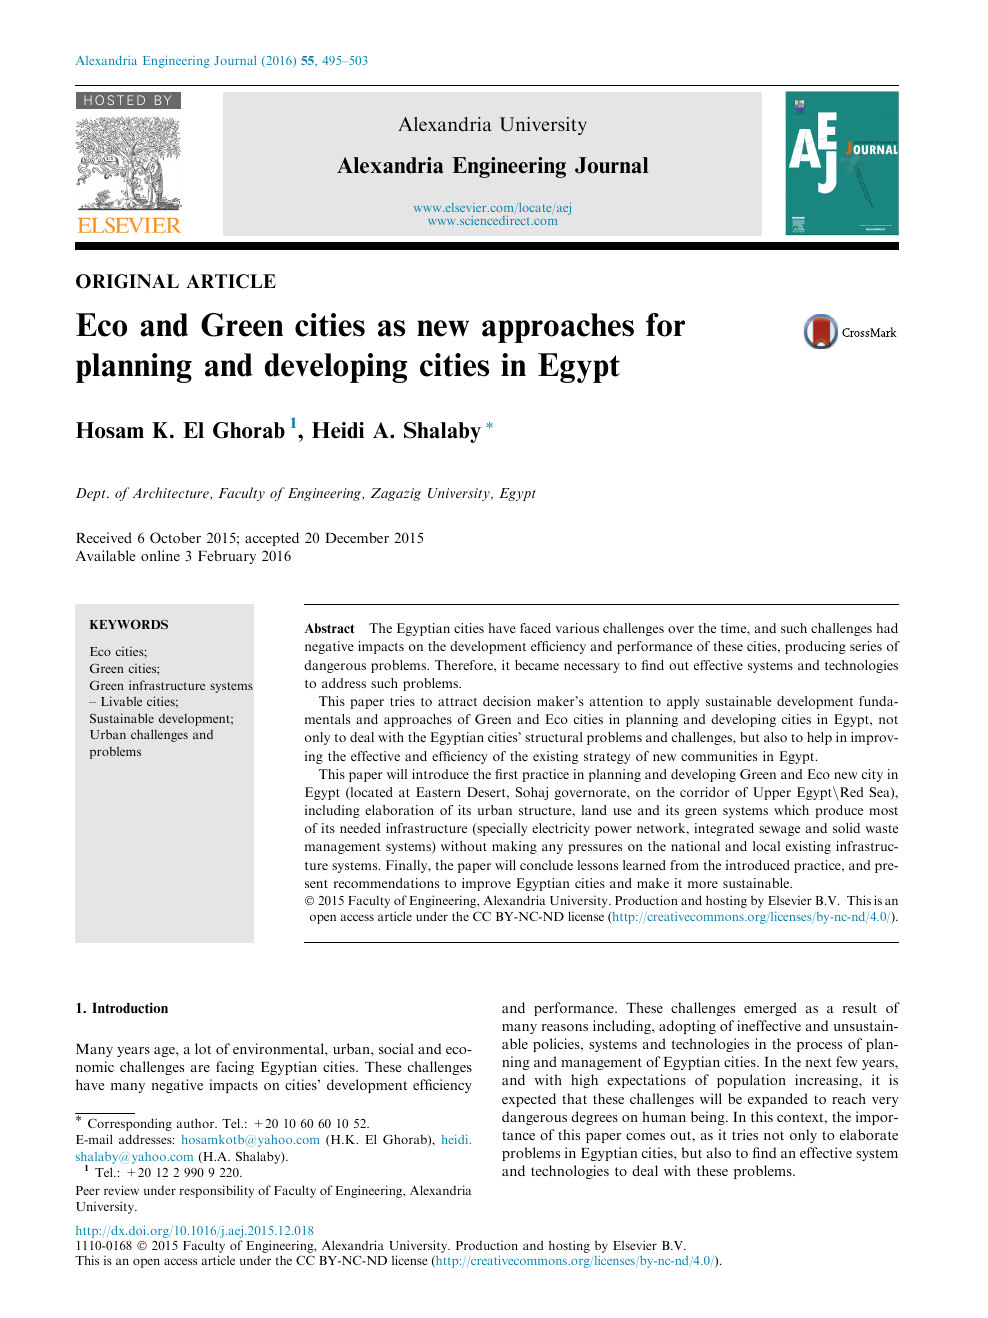 Eco and Green cities as new approaches for planning and